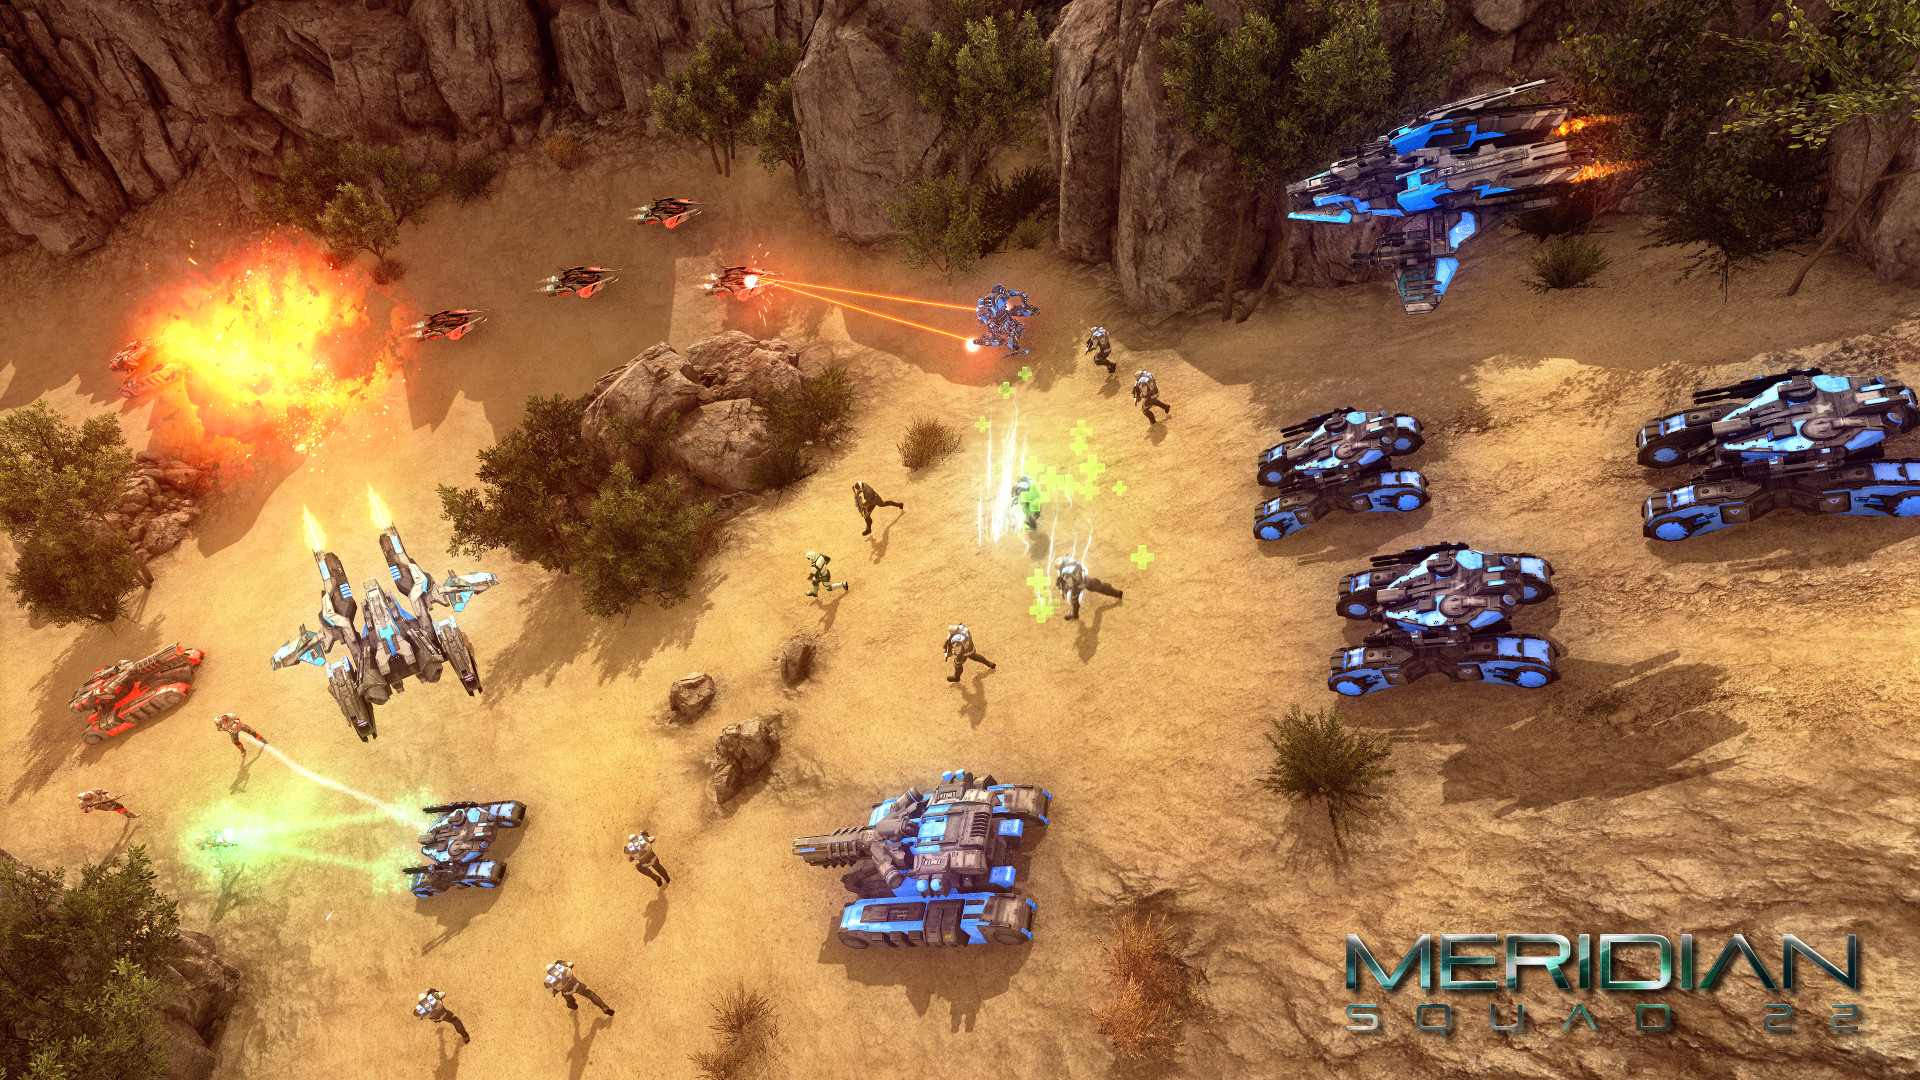 Meridian: Squad 22 screenshot 2